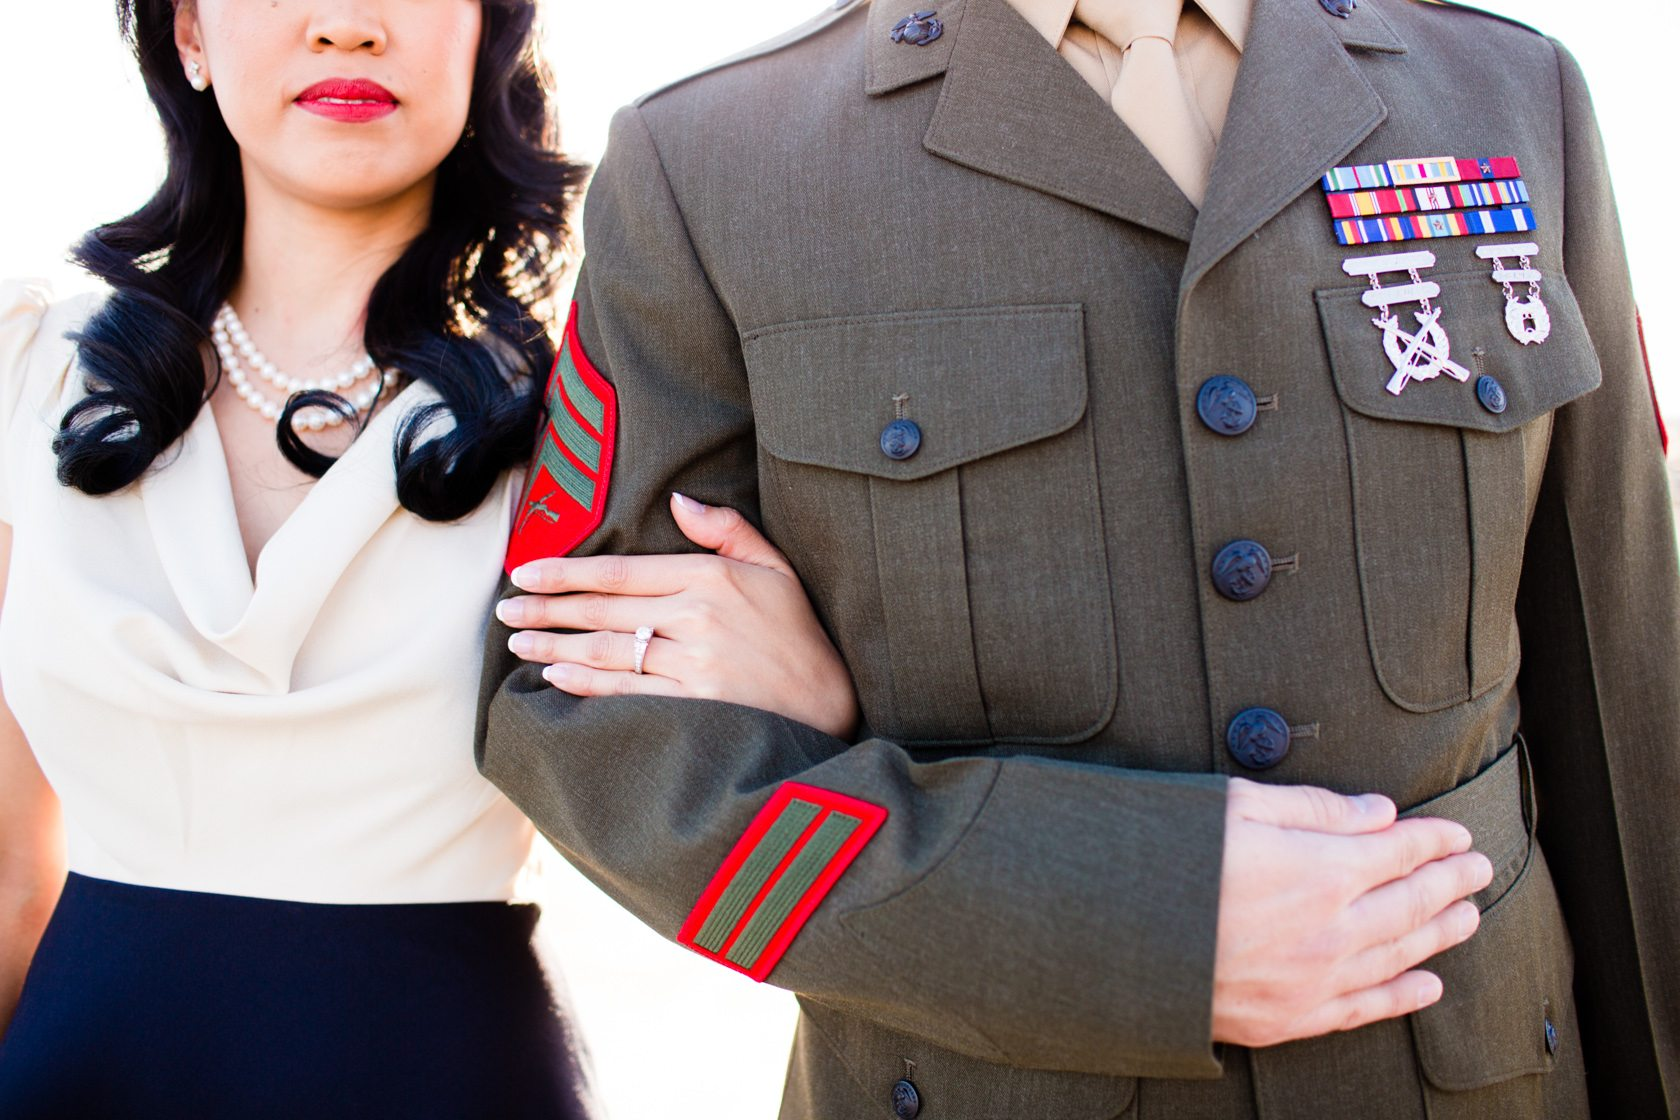 USS_Midway_Engagement_Session_27.jpg